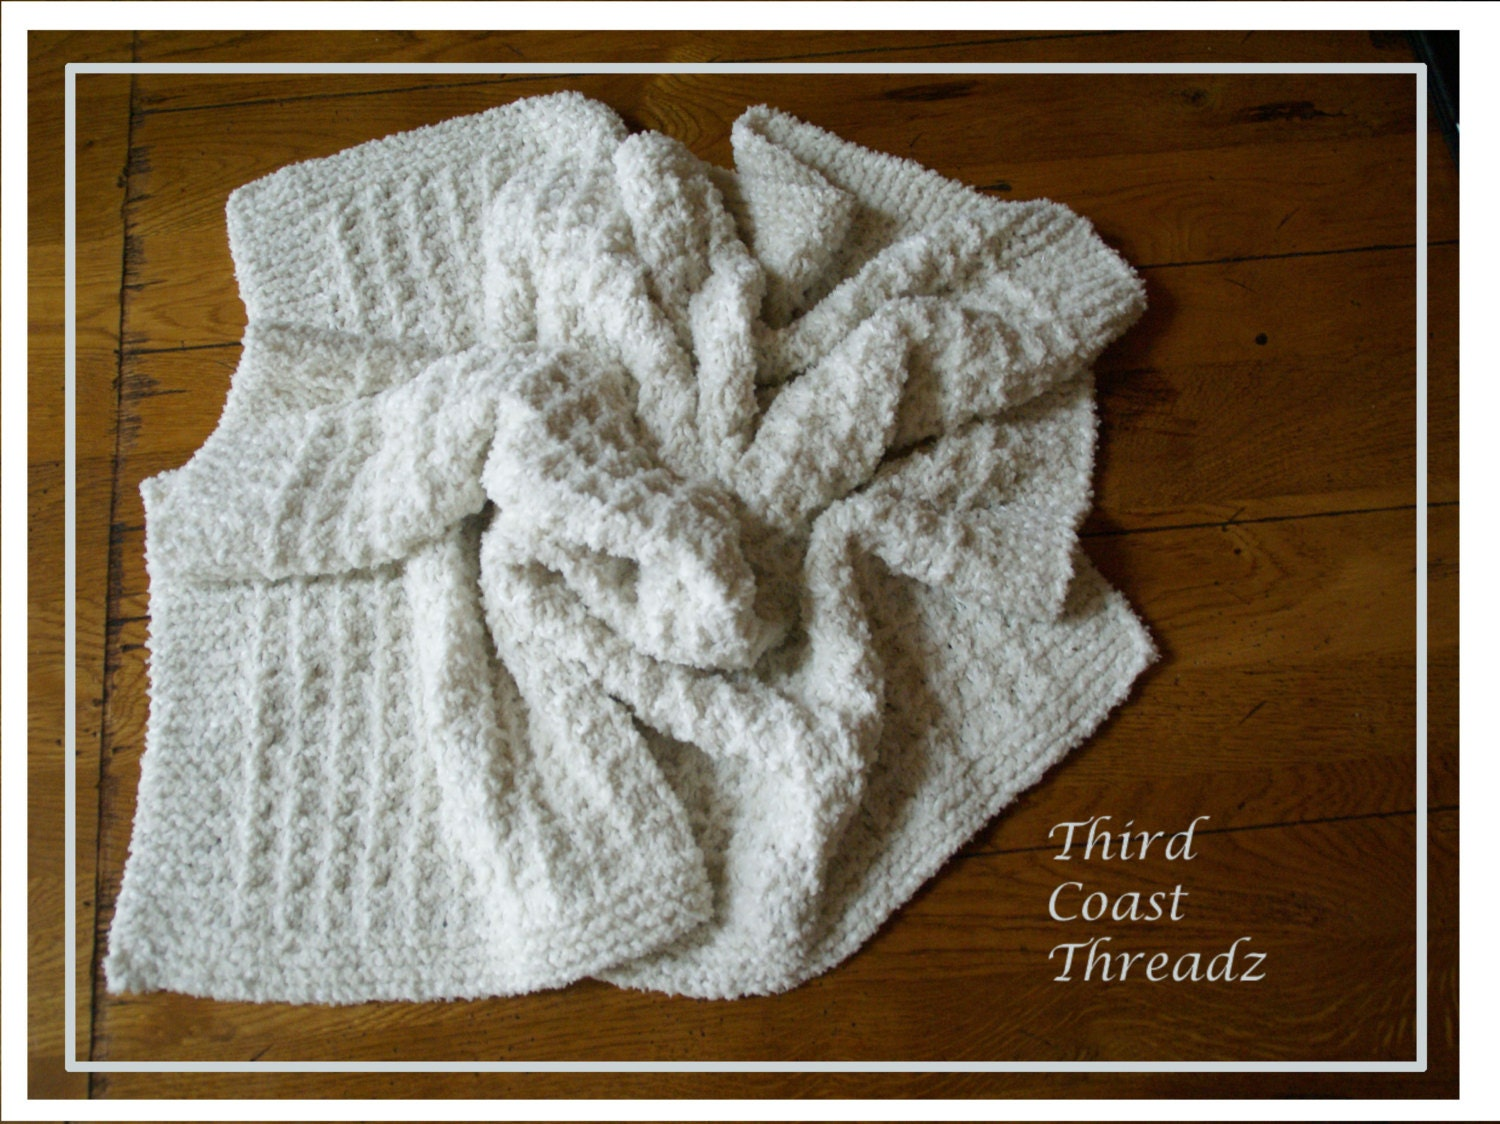 Waffle Knitting Pattern Blanket : Hand Knitted Waffle Weave Baby Blanket by ThirdCoastThreadz